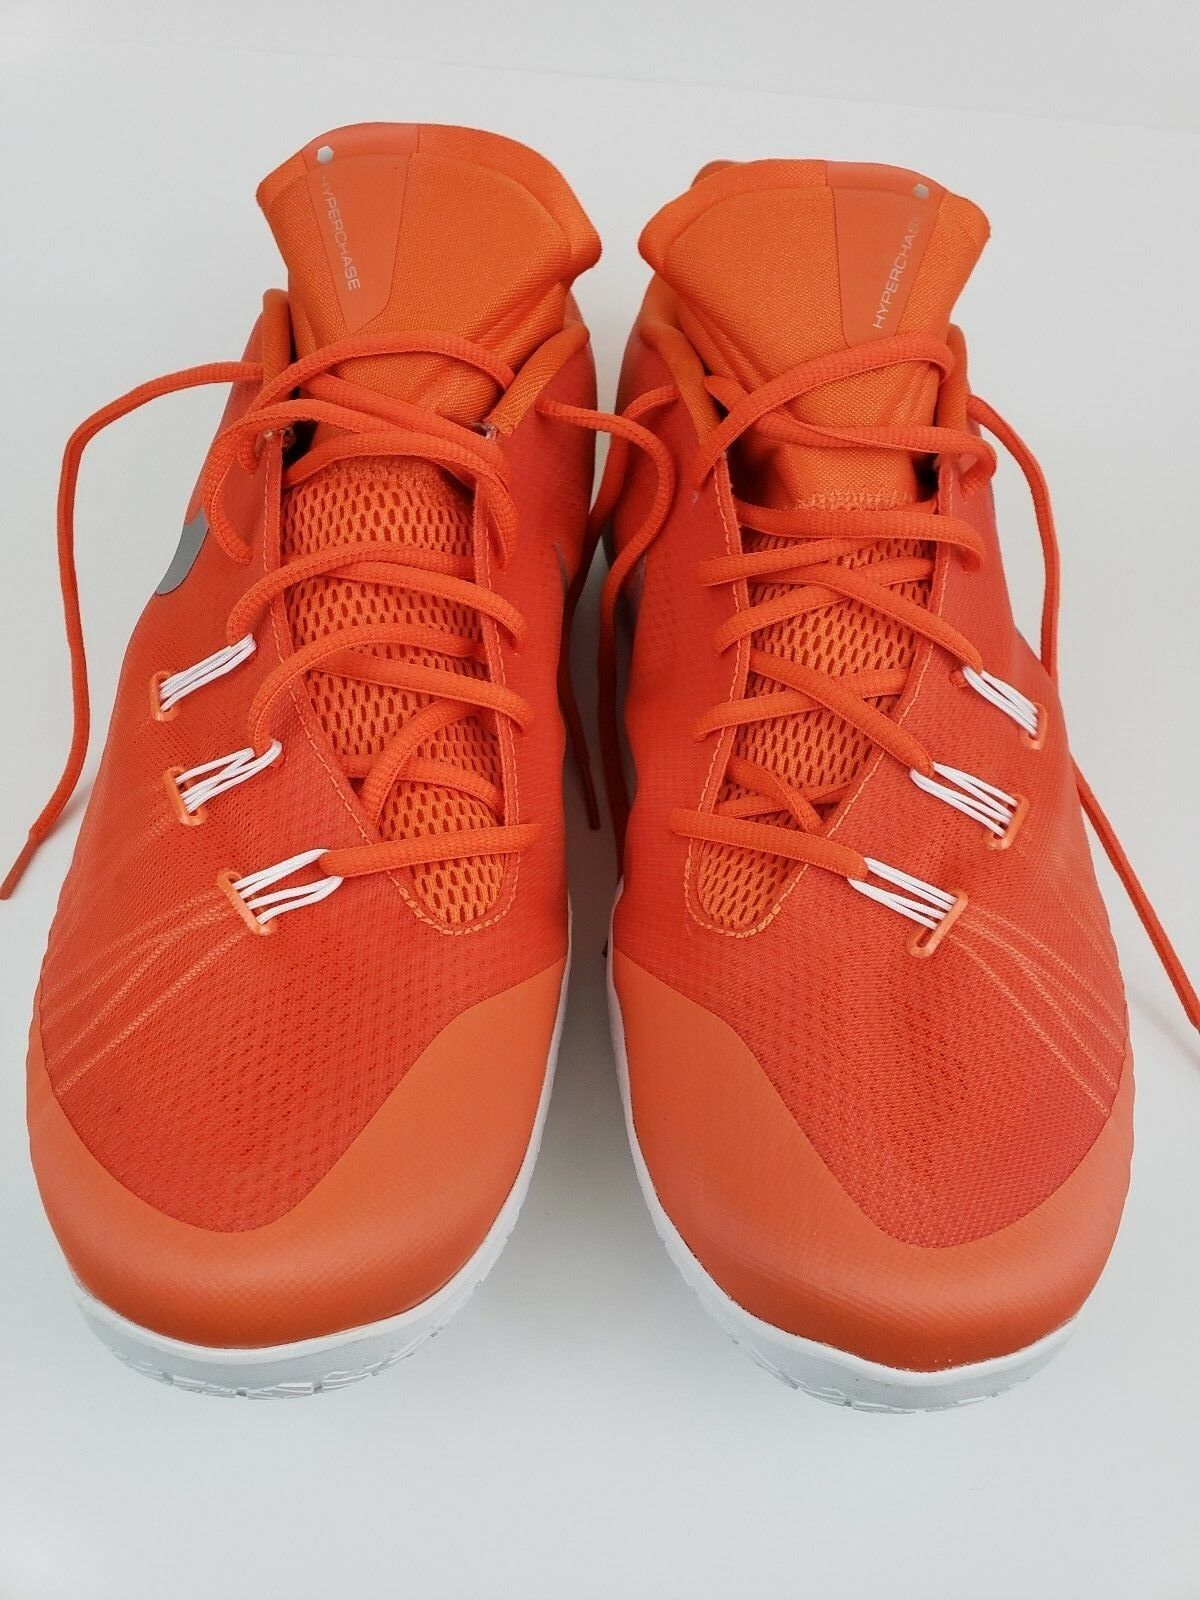 Nike orange Hyperchase orange White Basketball shoes Size